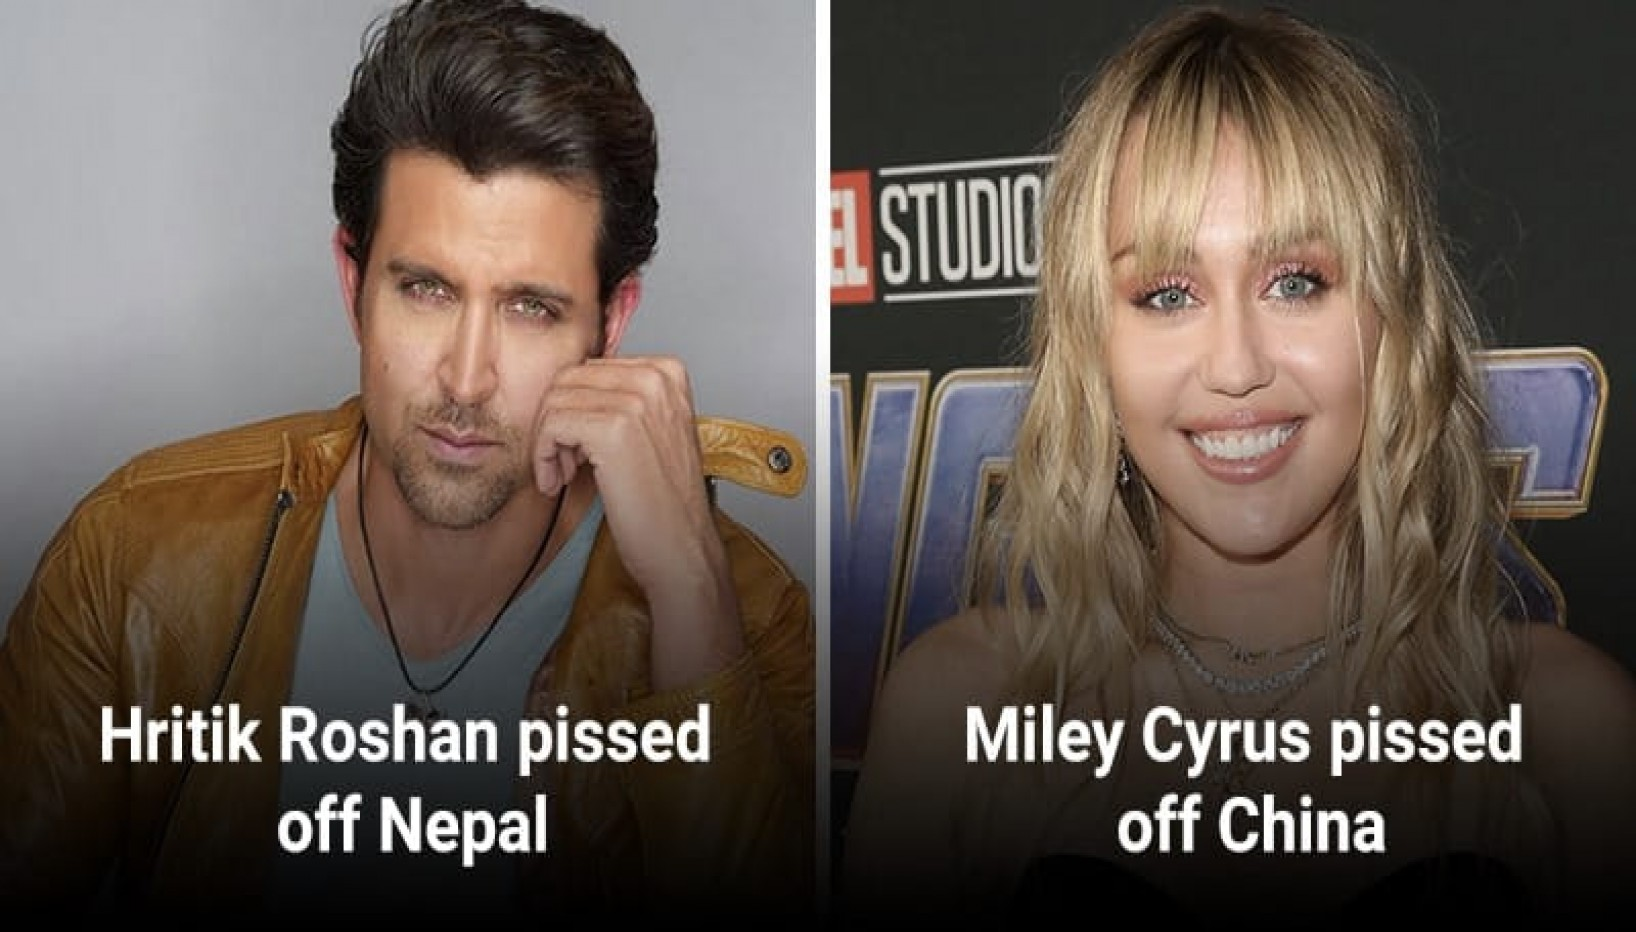 Here Are 11 Instances Of Celebrities Pissing Off An Entire Nation